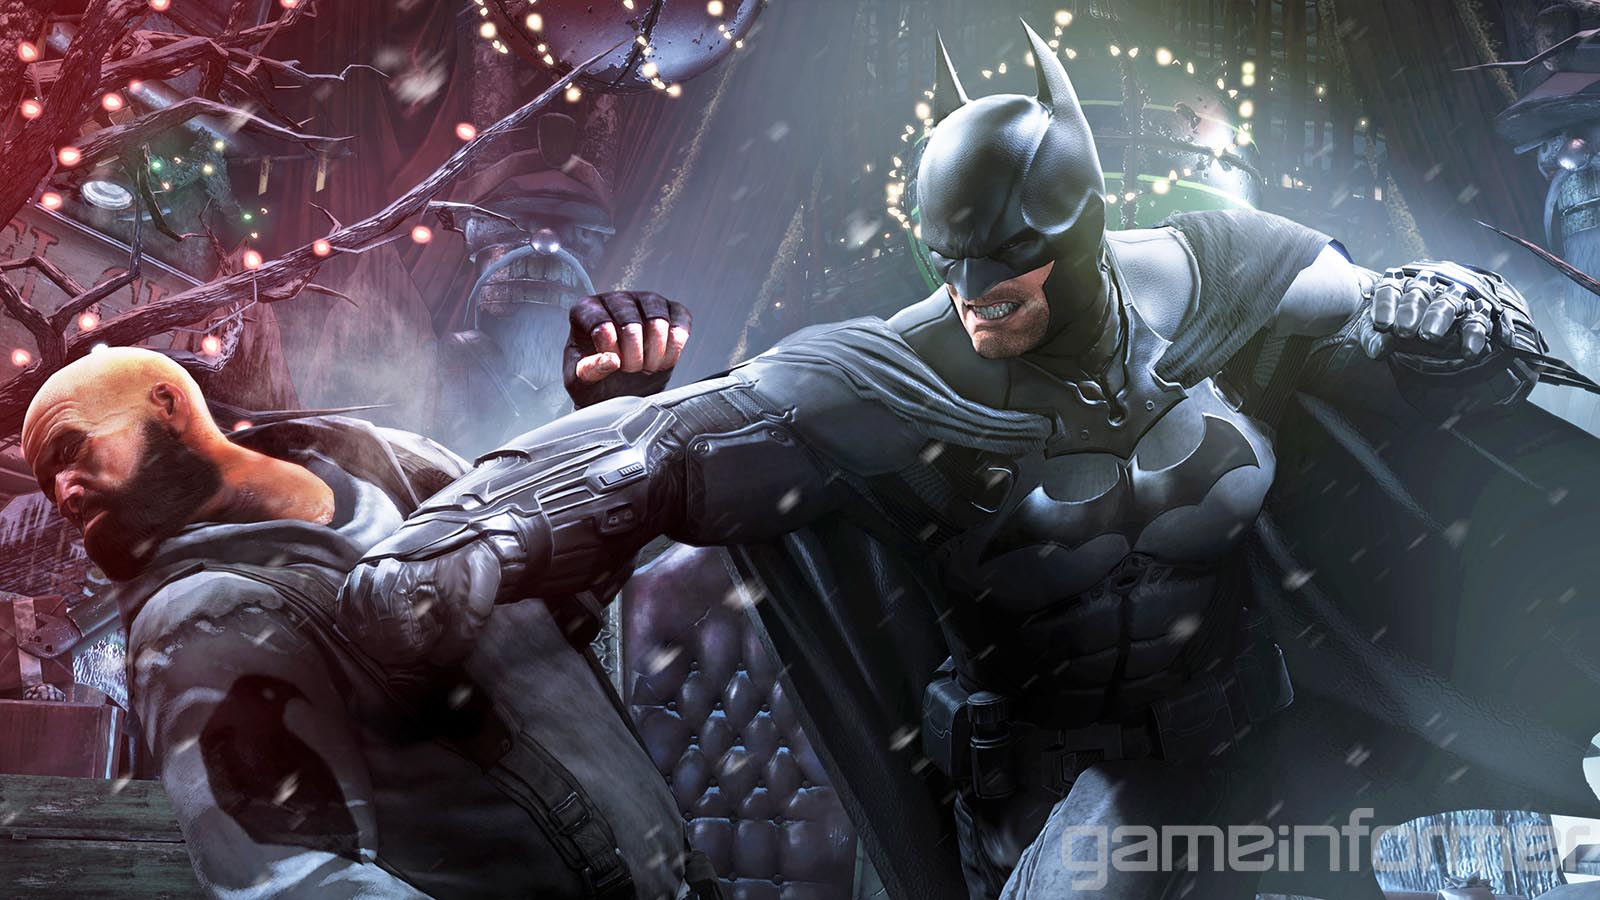 News Forum Lexikon ReviewsBatman Arkham Origins Gameplay